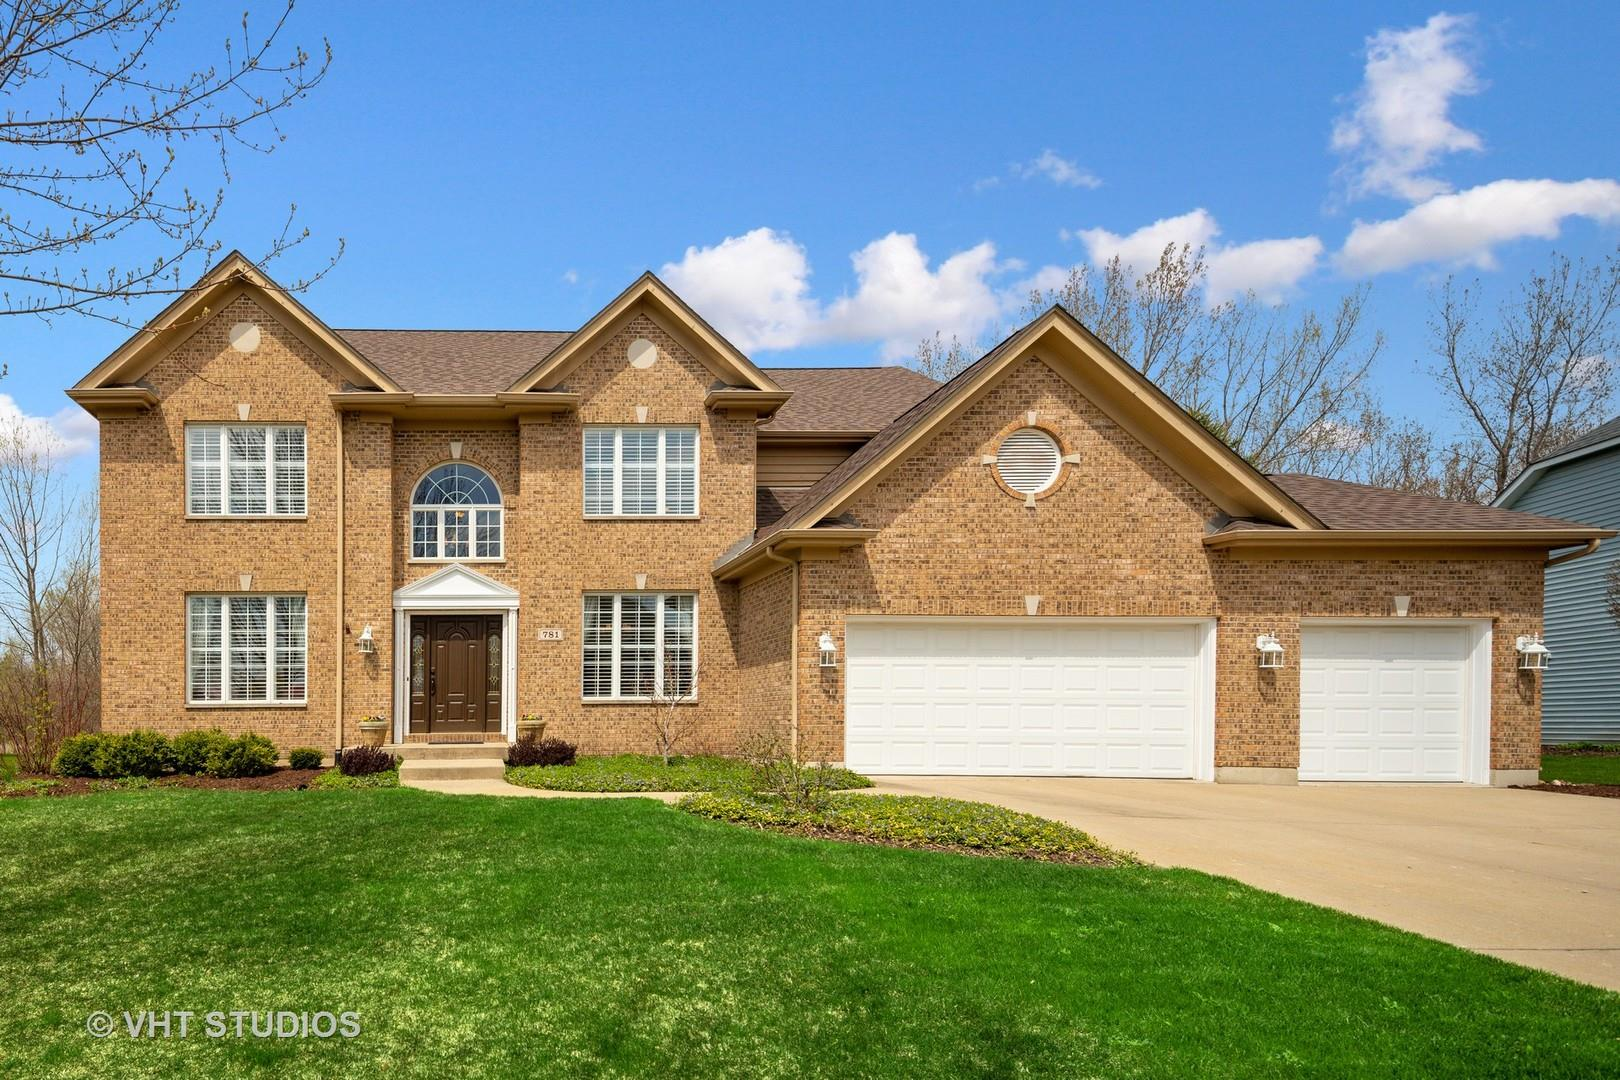 781 Wedgewood Drive, Crystal Lake, IL 60014 - #: 10702756